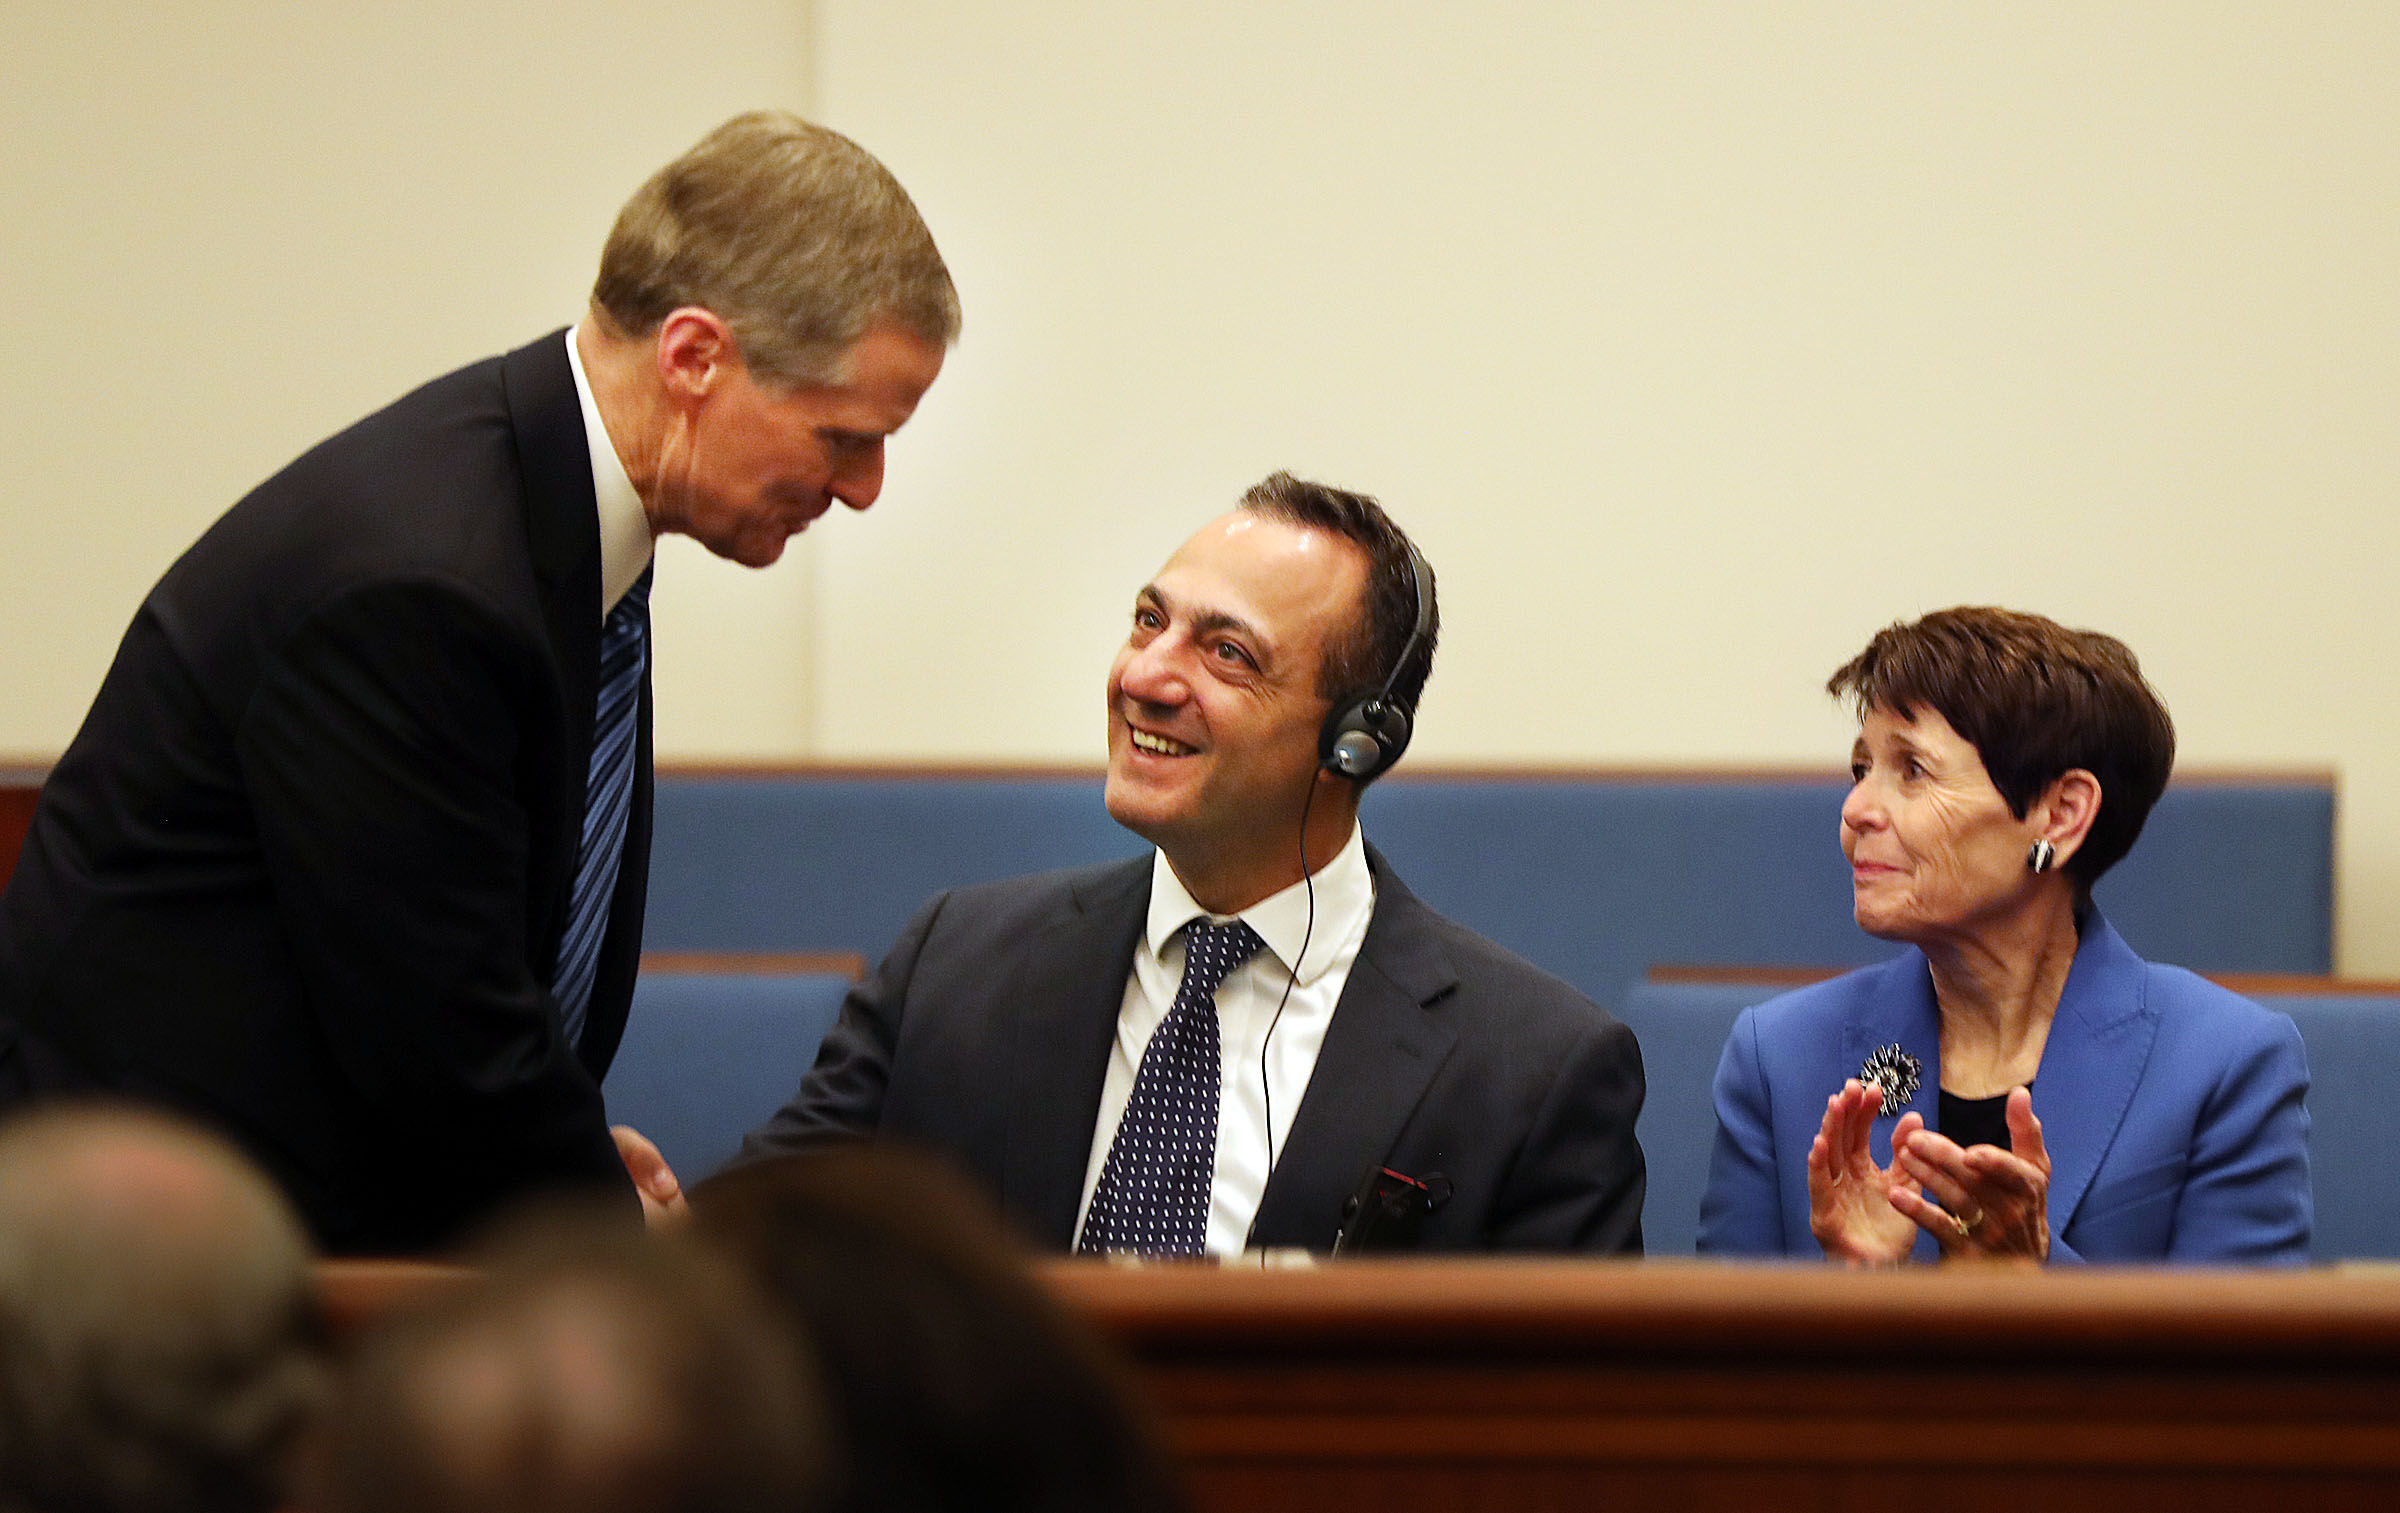 Elder David A. Bednar, left, of the Quorum of the Twelve Apostles greets President Marcello De Vito, president of the Rome City Council, during a press briefing at a meetinghouse on the Rome Italy Temple grounds on Monday, Jan. 14, 2019. At right is Elder Bednar's wife, Sister Susan Bednar.